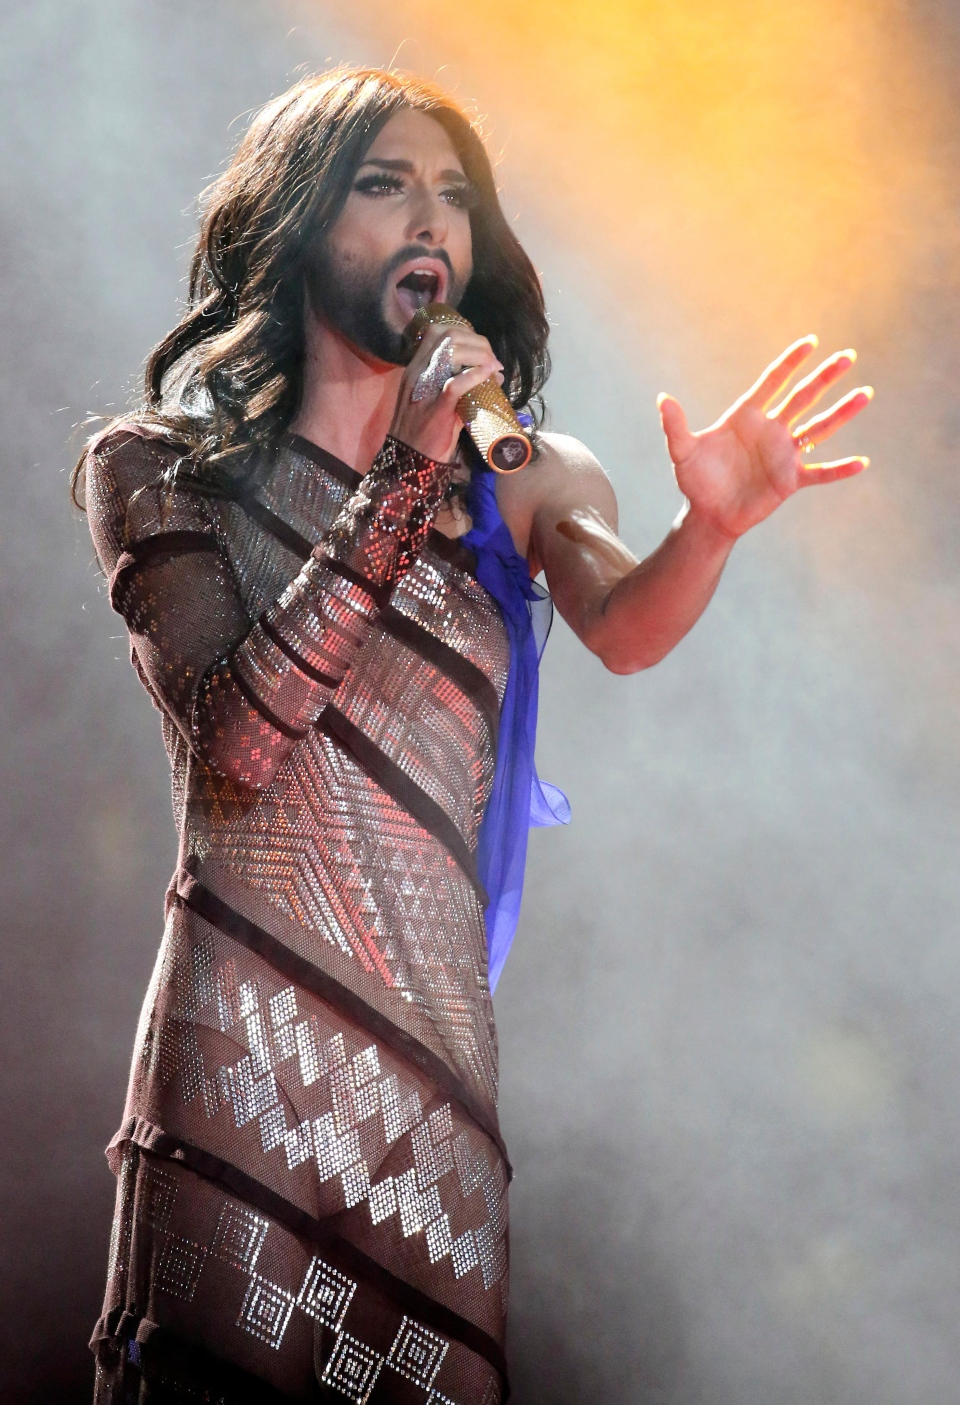 Austrian singer and Eurovision Song Contest winner Conchita Wurst performs on stage during the opening ceremony of the Life Ball in front of City Hall in Vienna, Austria, Saturday, May 31, 2014. (AP Photo/Ronald Zak)